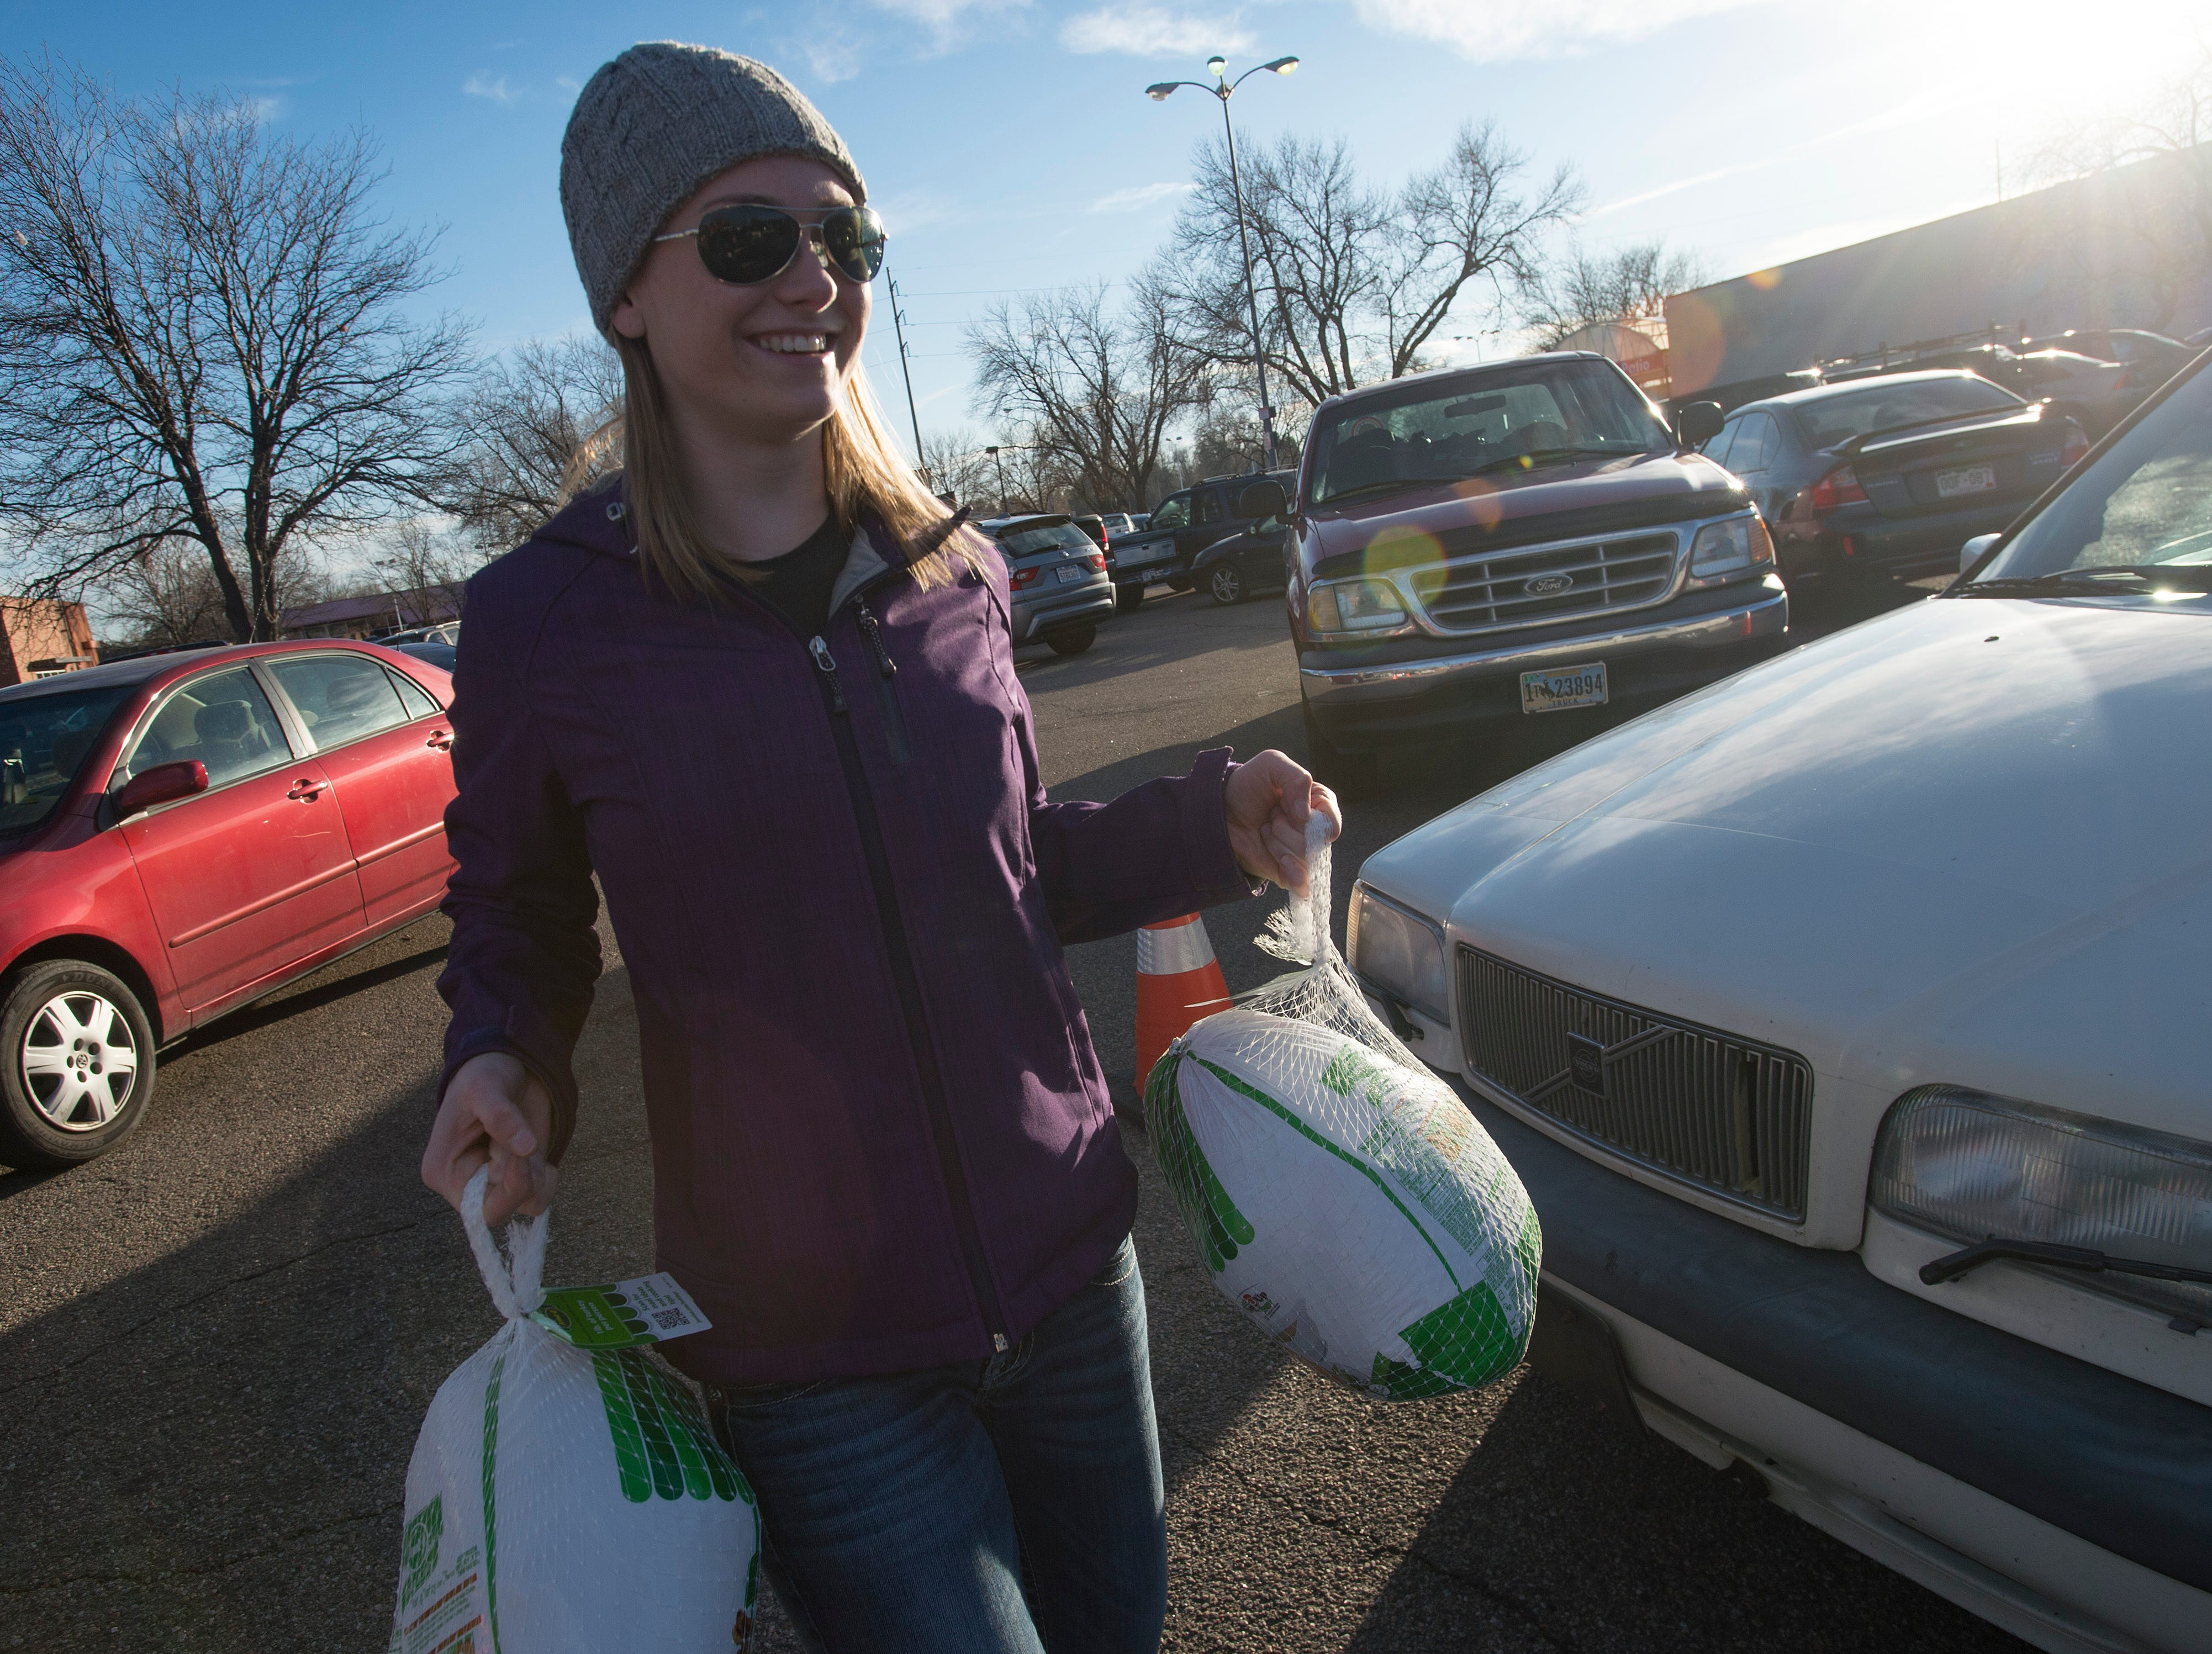 Volunteer Kylie Jaramillo collects donated turkeys during the Food Bank for Larimer County's Stuff The Truck Turkey Donation on Thursday, November 15, 2018.